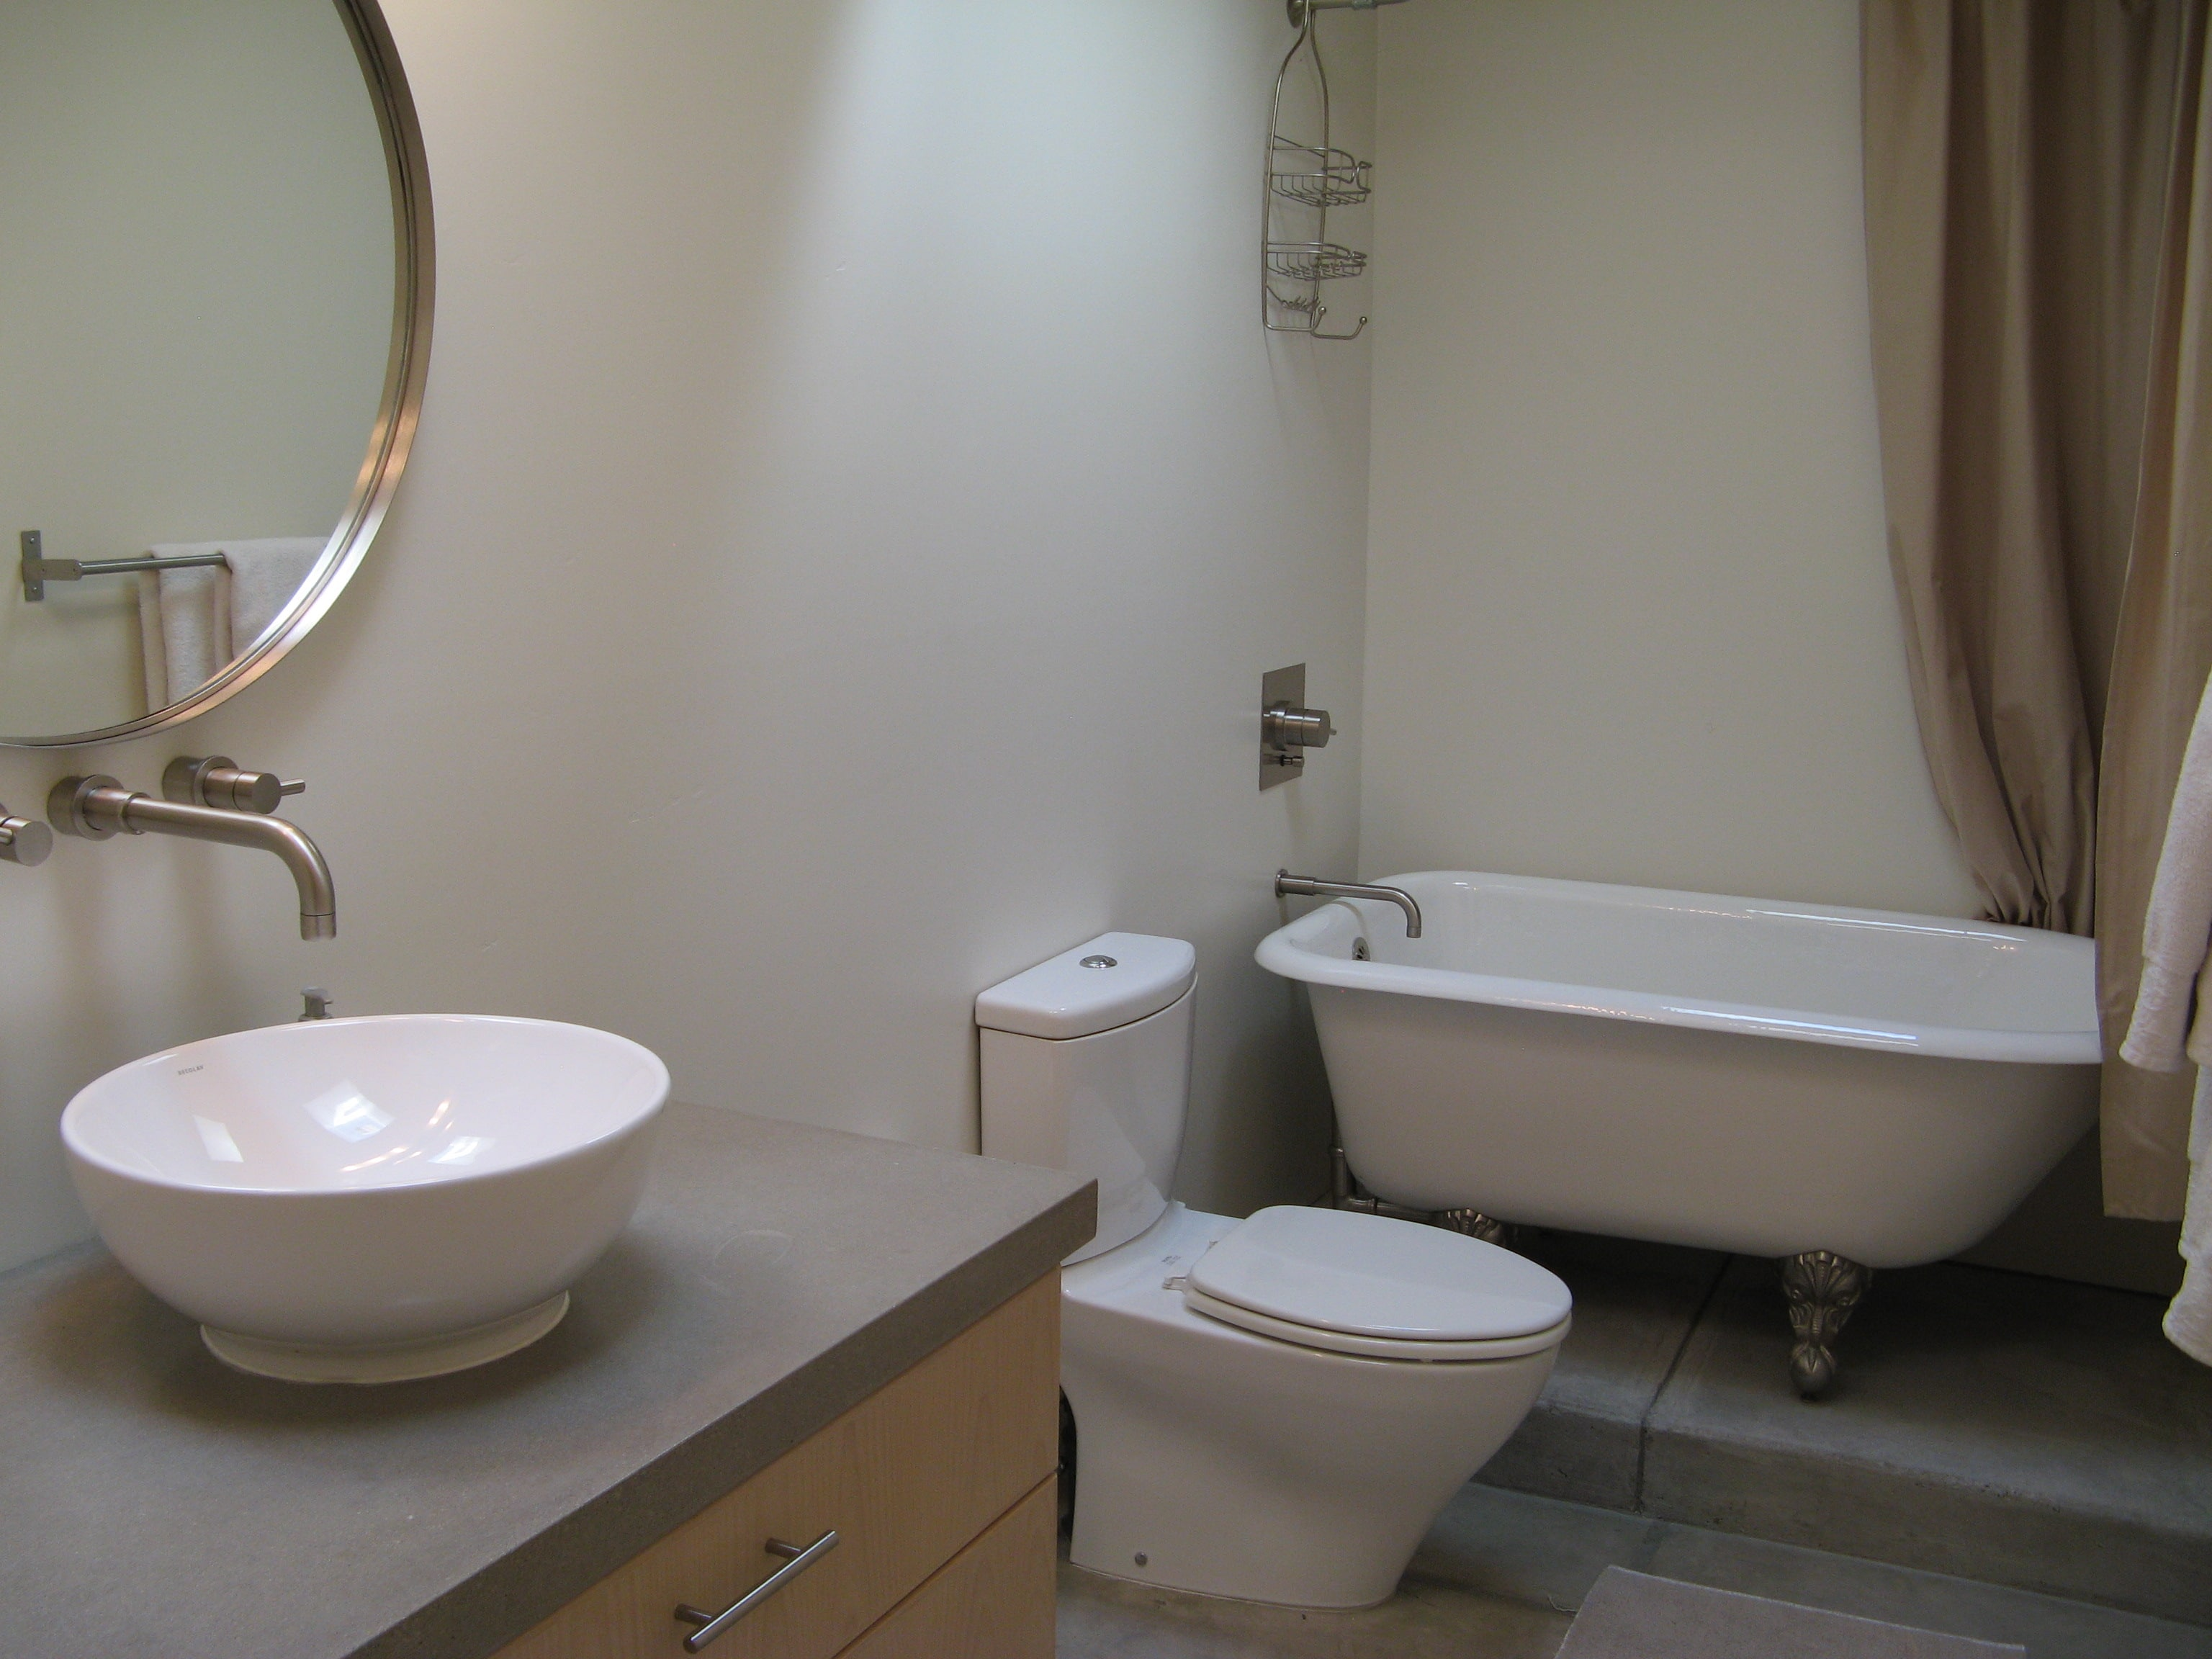 Modern, contemporary fixtures juxtaposed with a vintage claw-foot tub